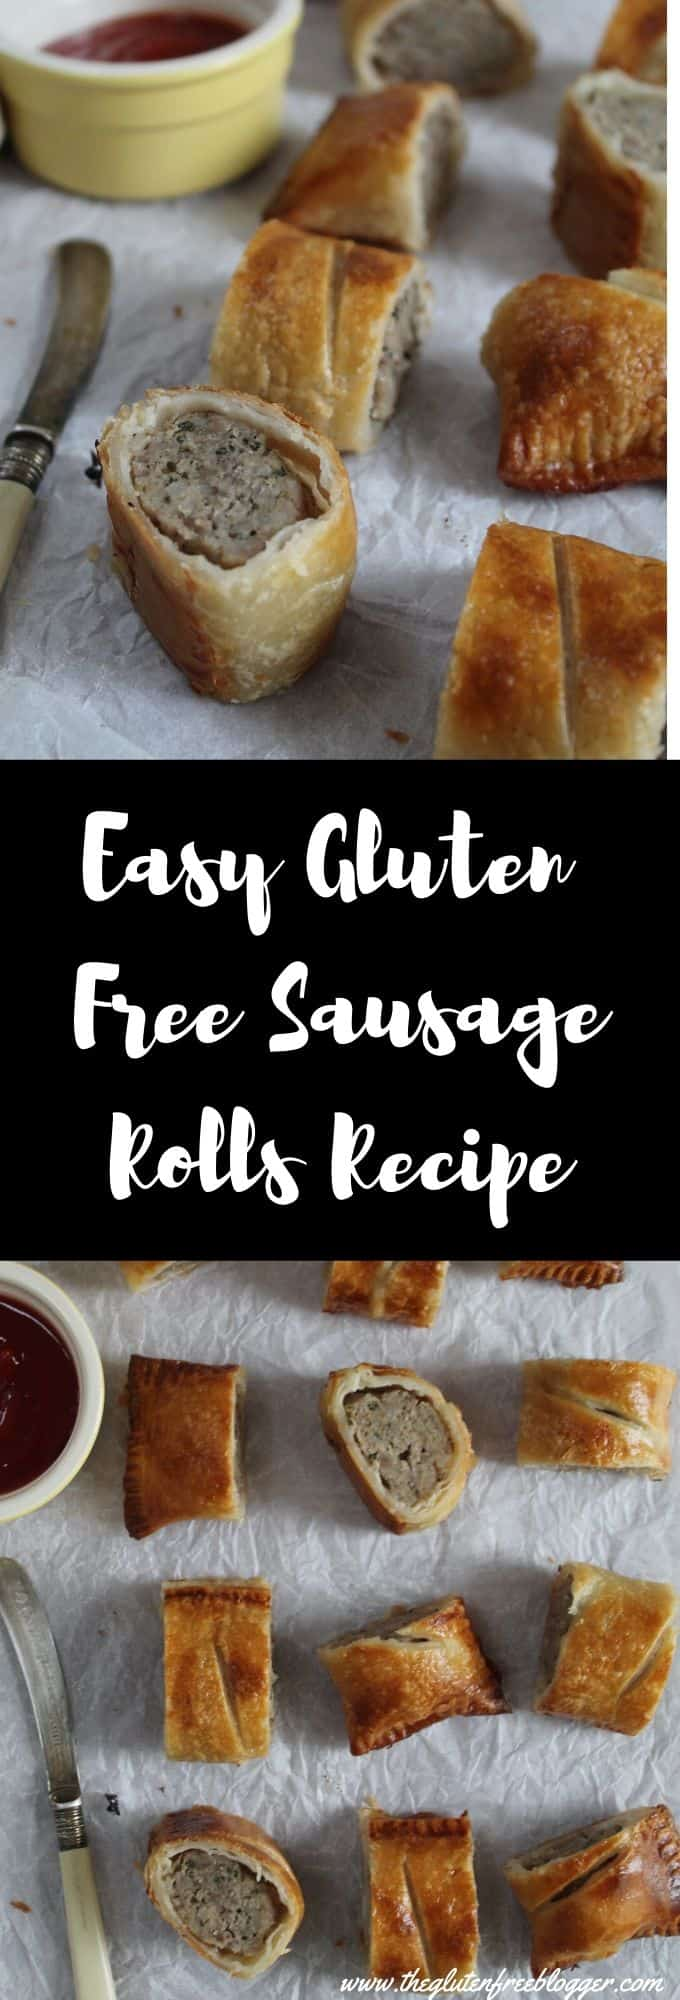 GLUTEN FREE SAUSAGE ROLLS RECIPE easy gluten free party food christmas ideas